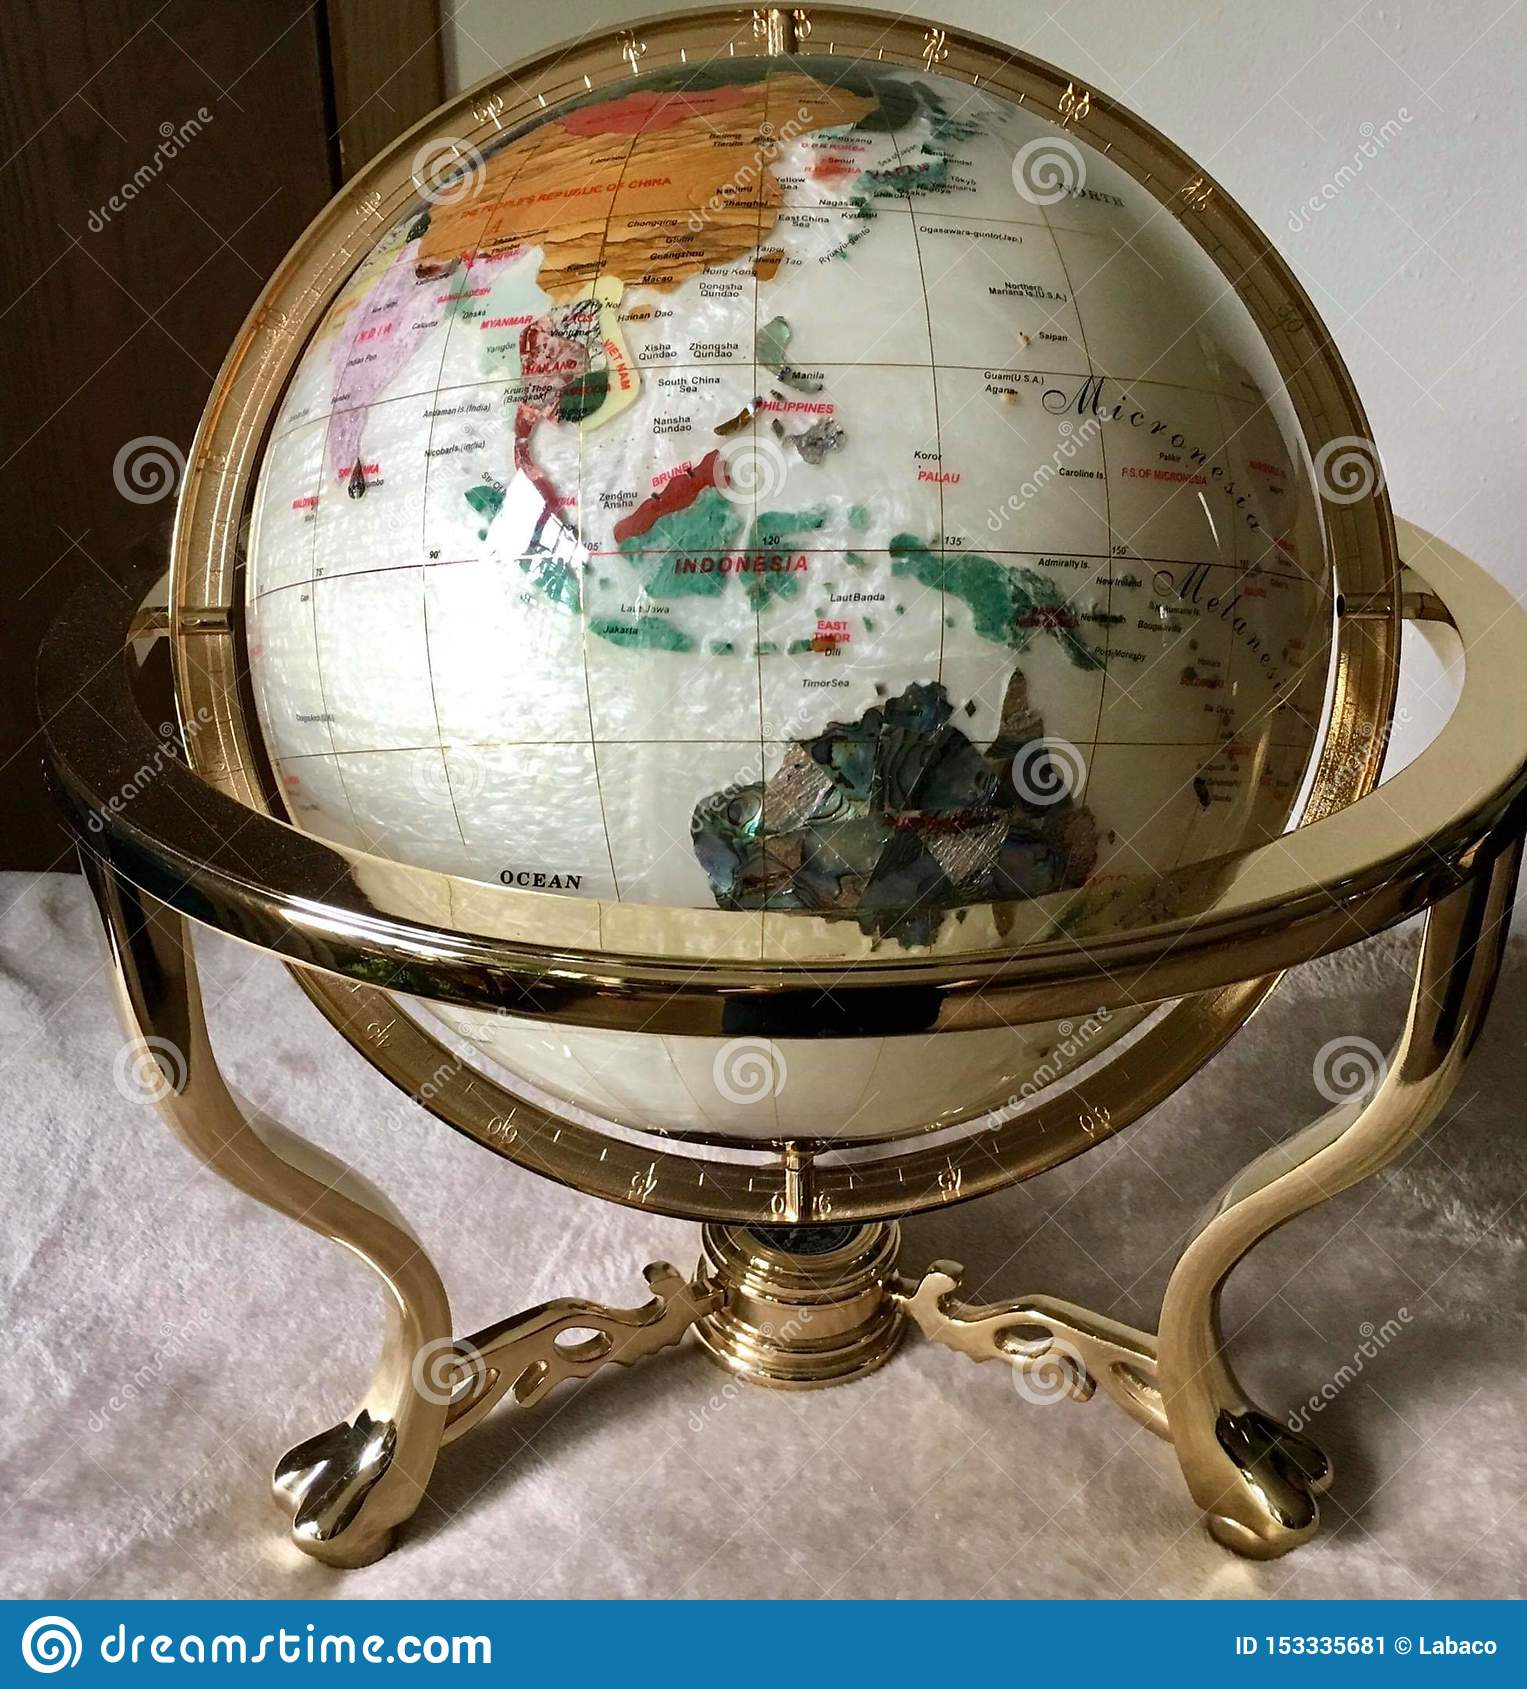 The World Ball Is Made Of Shells